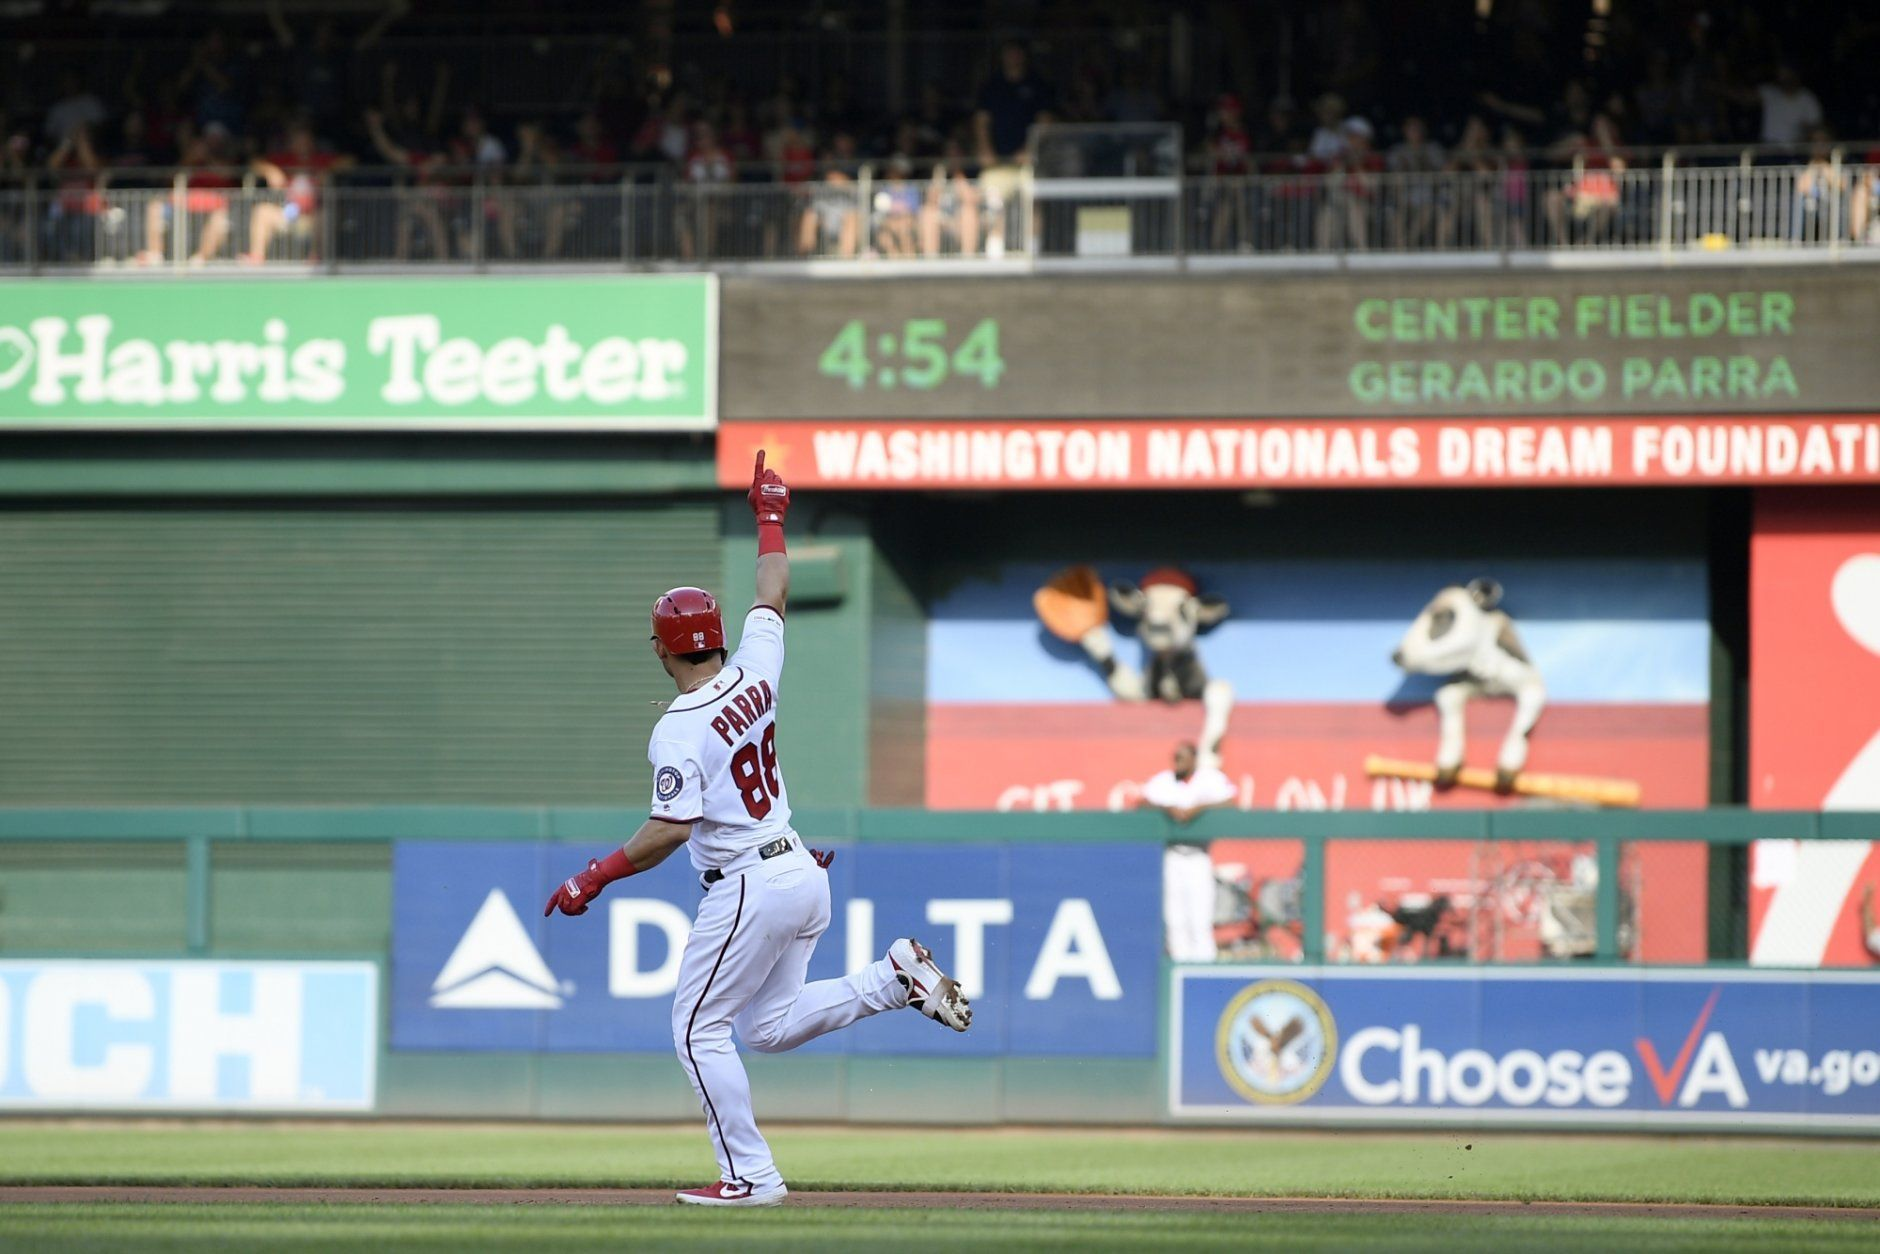 Washington Nationals' Gerardo Parra celebrates his grand slam as he rounds the bases during the second inning of a baseball game against the Cleveland Indians, Saturday, Sept. 28, 2019, in Washington. (AP Photo/Nick Wass)